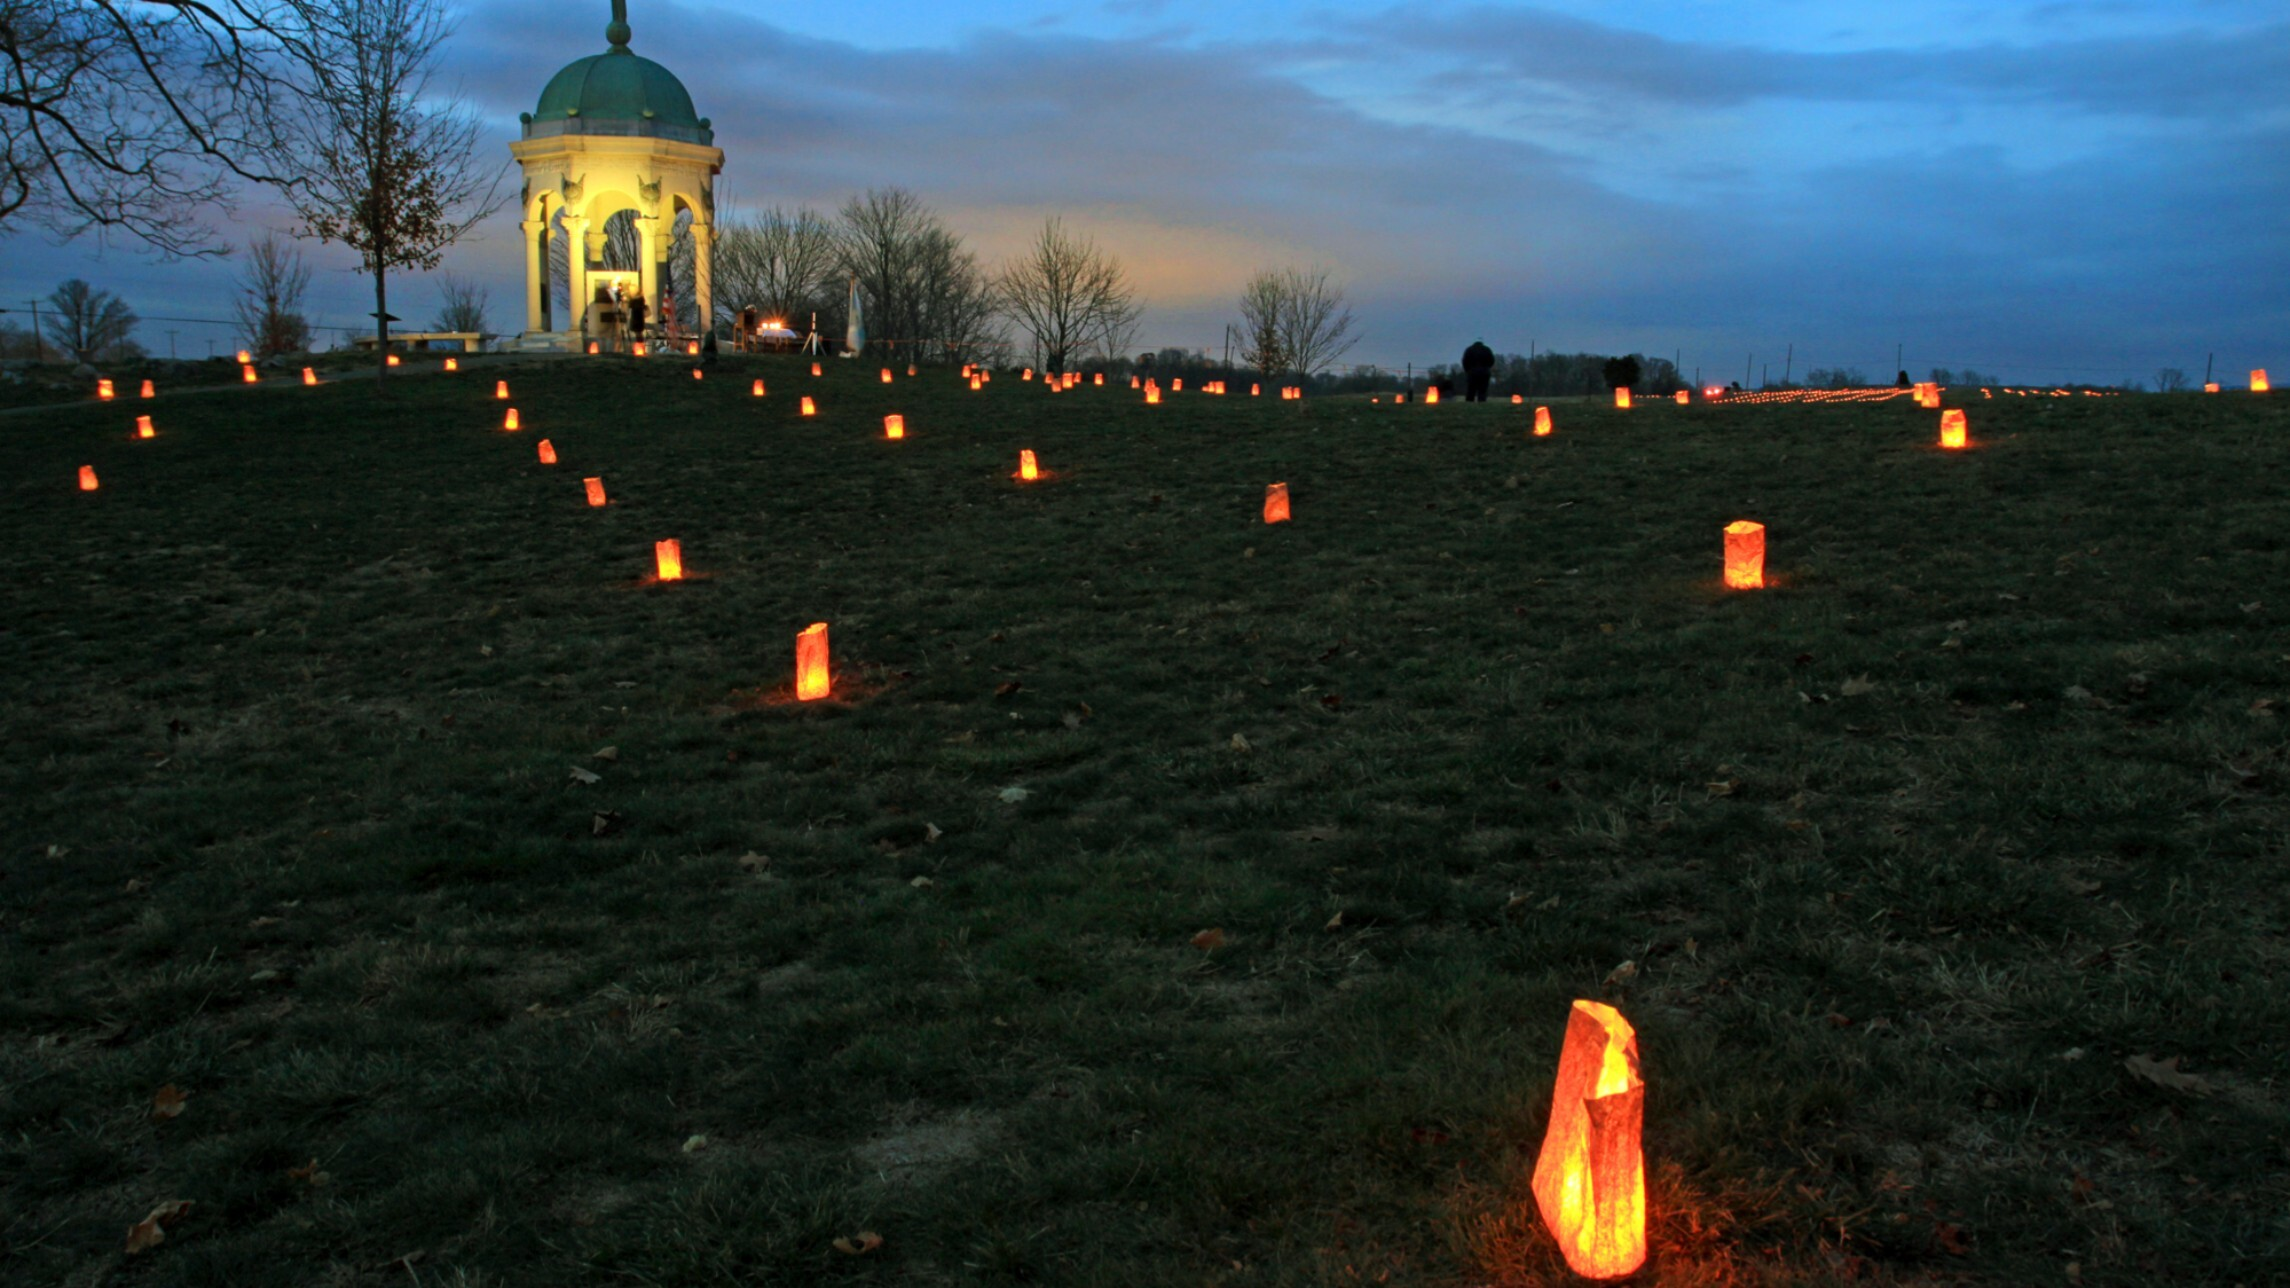 Illuminating Antietam. Remembering America's bloodiest war